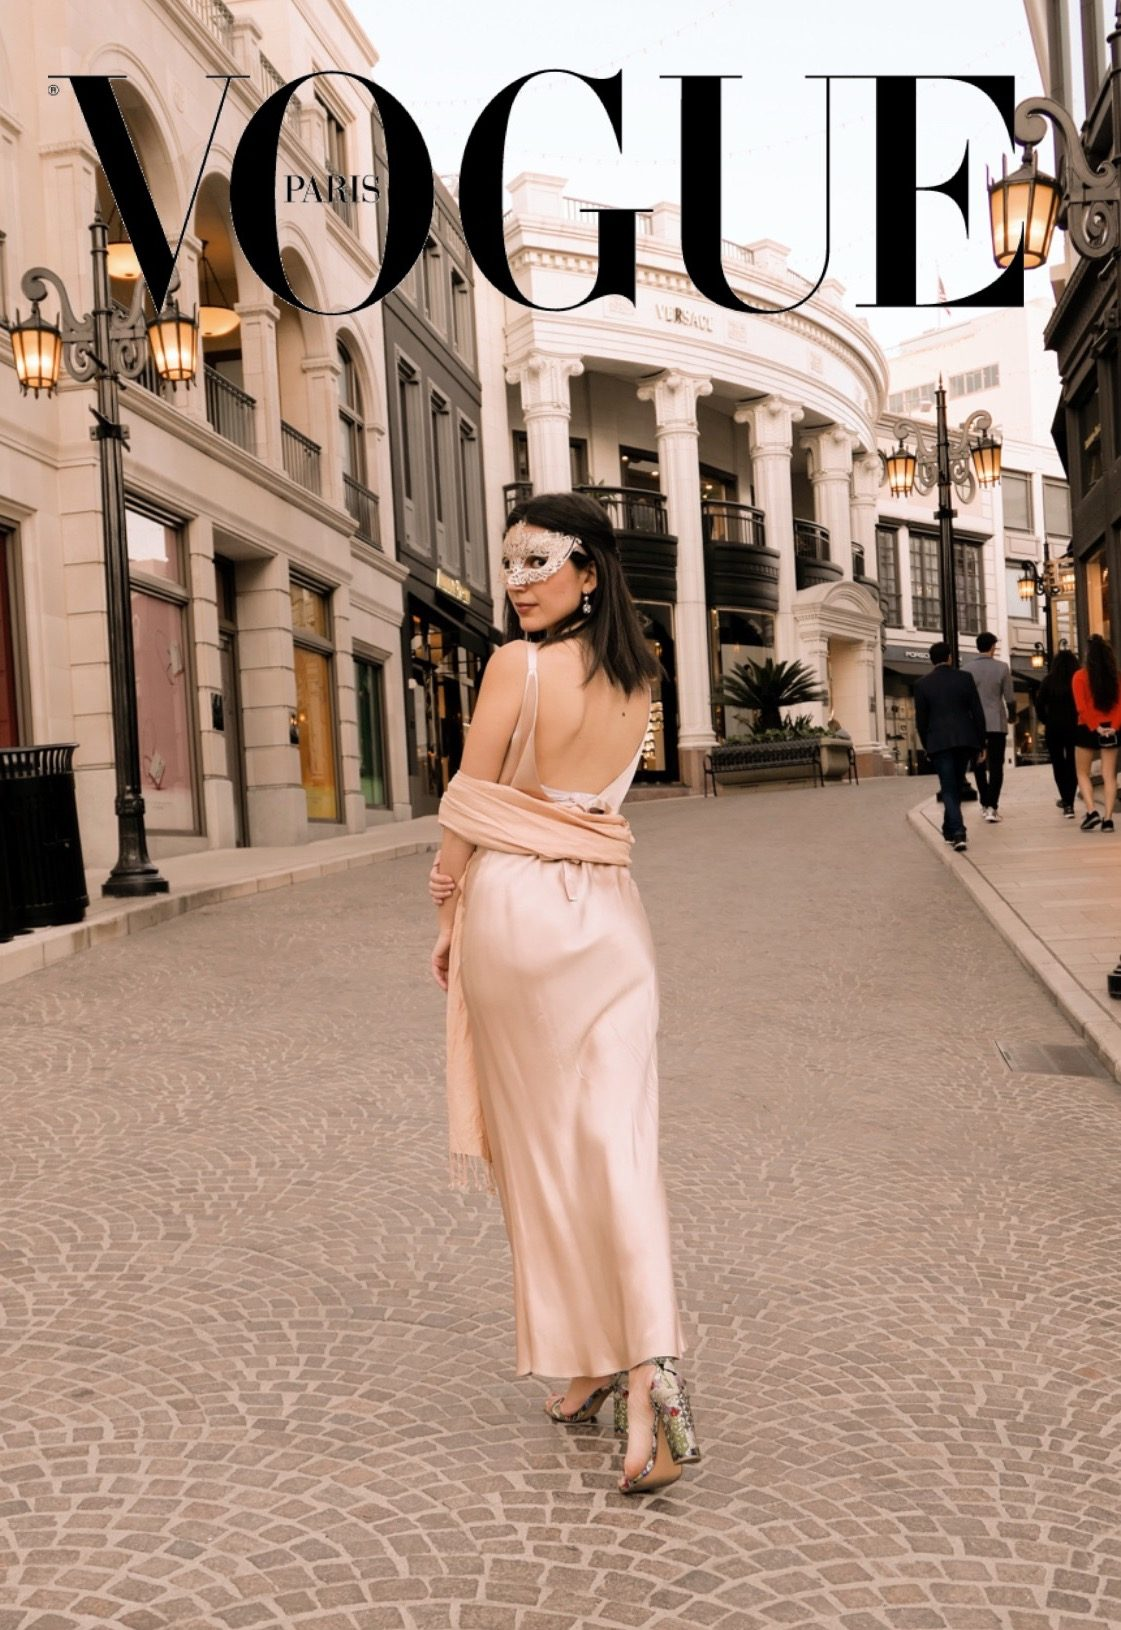 Vogue, Vogue challenge, Vogue cover, cover star, fashion, style, high fashion, fashion editorial, fashion blogger, couture fashion, Vogue Magazine, fashion diversity, vintage fashion, ootd magazine, fashion fury, style diary, Paris Vogue, Beverly Hills, Rodeo Drive